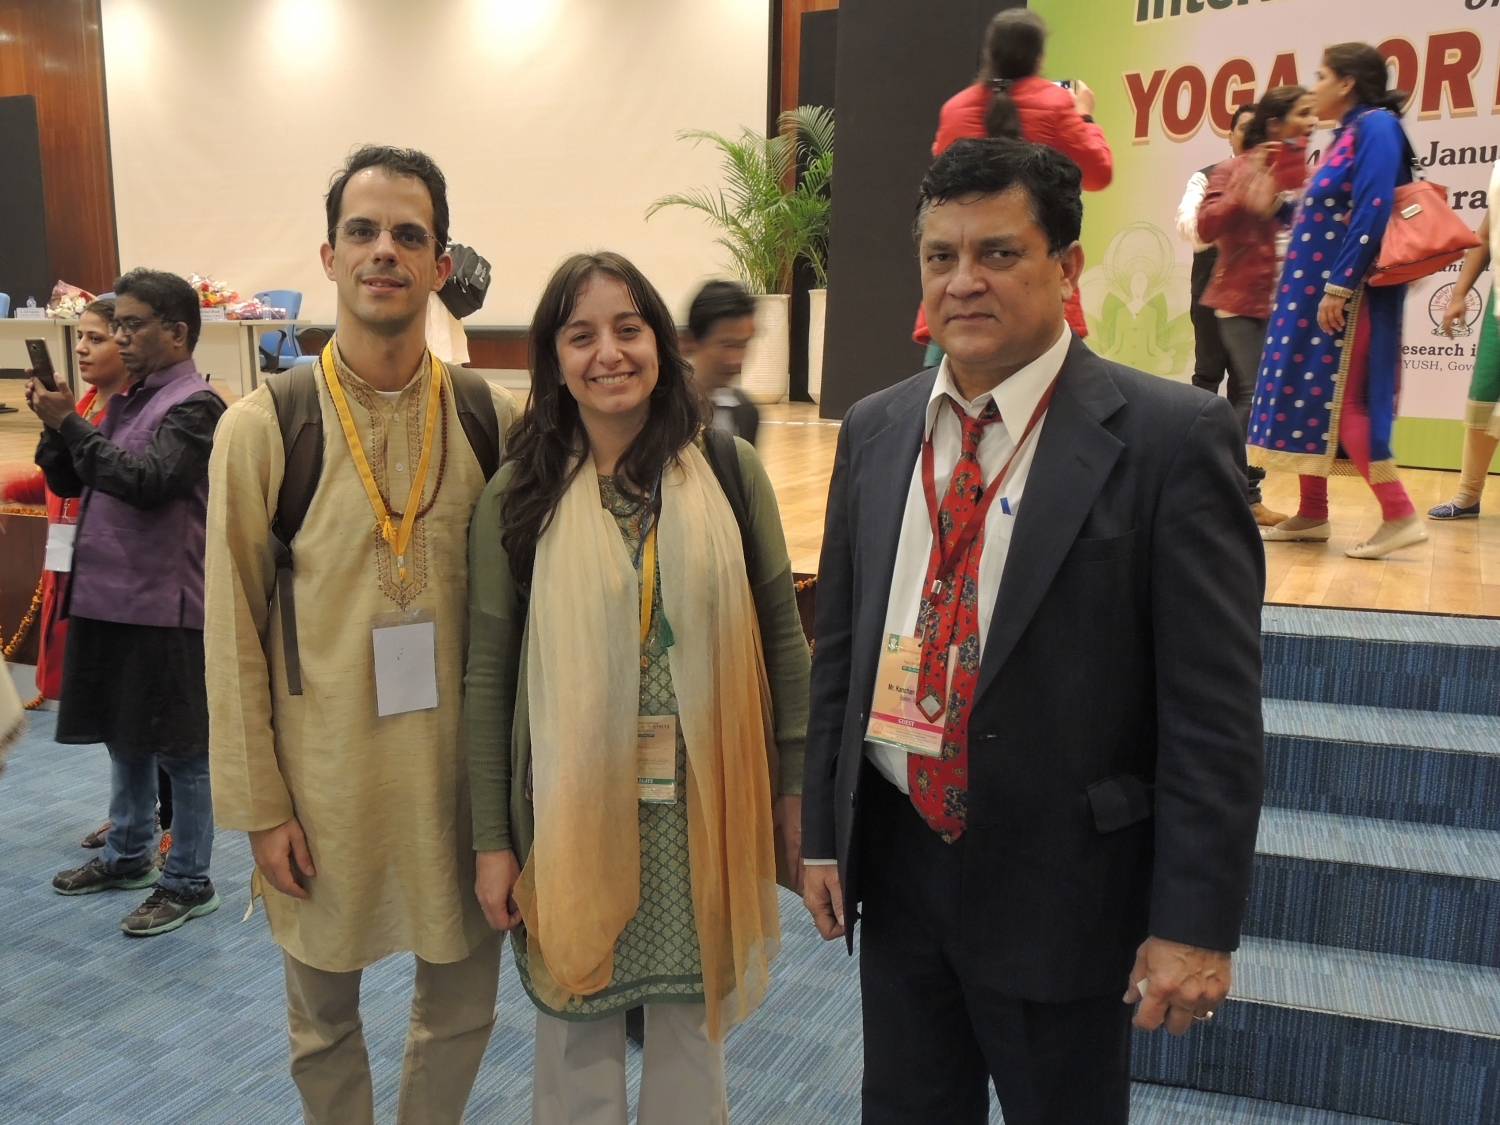 Mr. Kanchan Banerjee, Head of Indo-US Initiative, Boston, USA